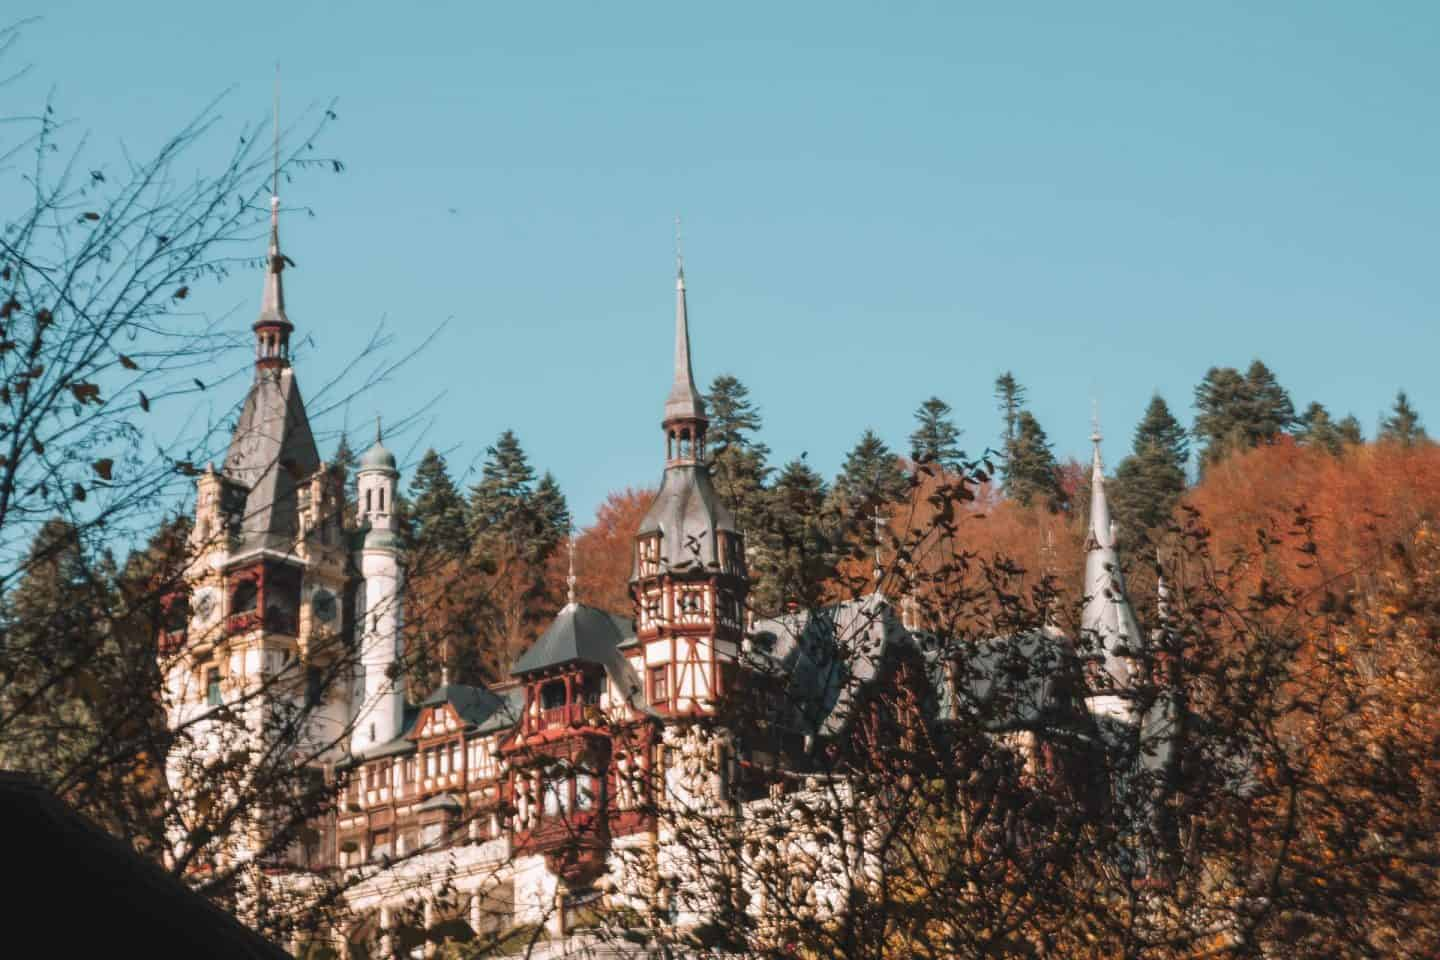 incredible view of peles castle with green and orange trees in the background